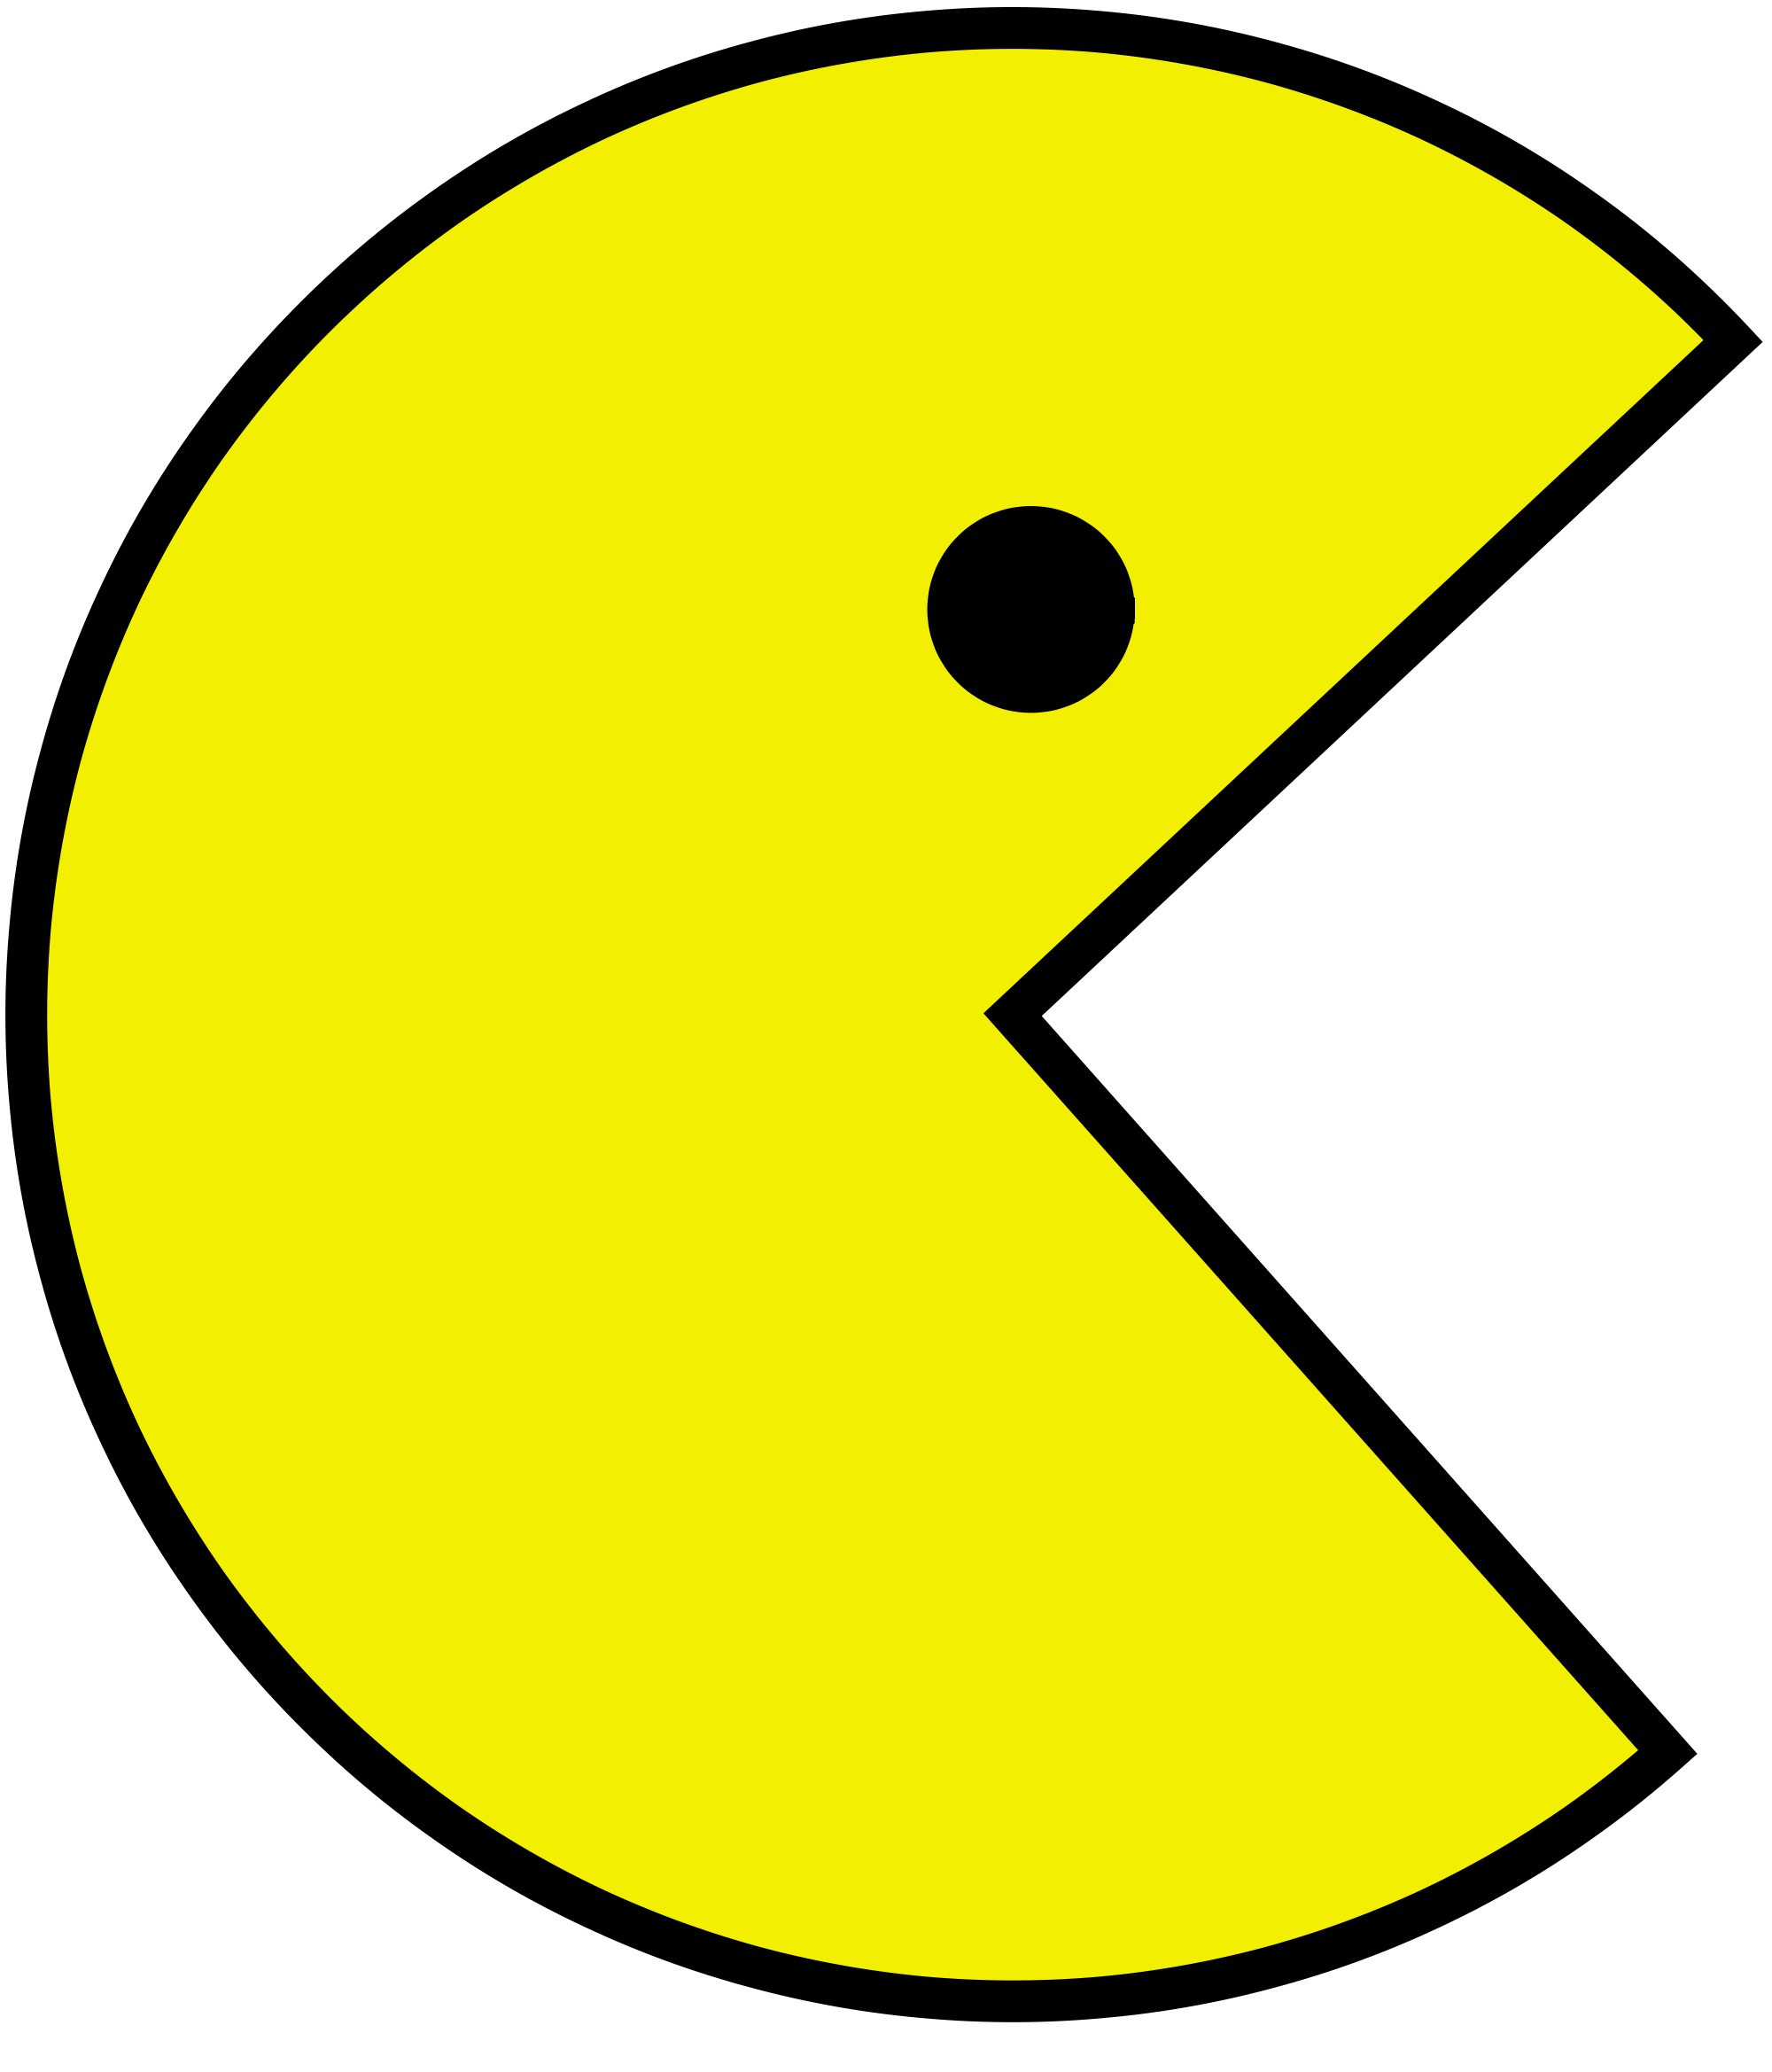 Pacman svg. Pac man know your